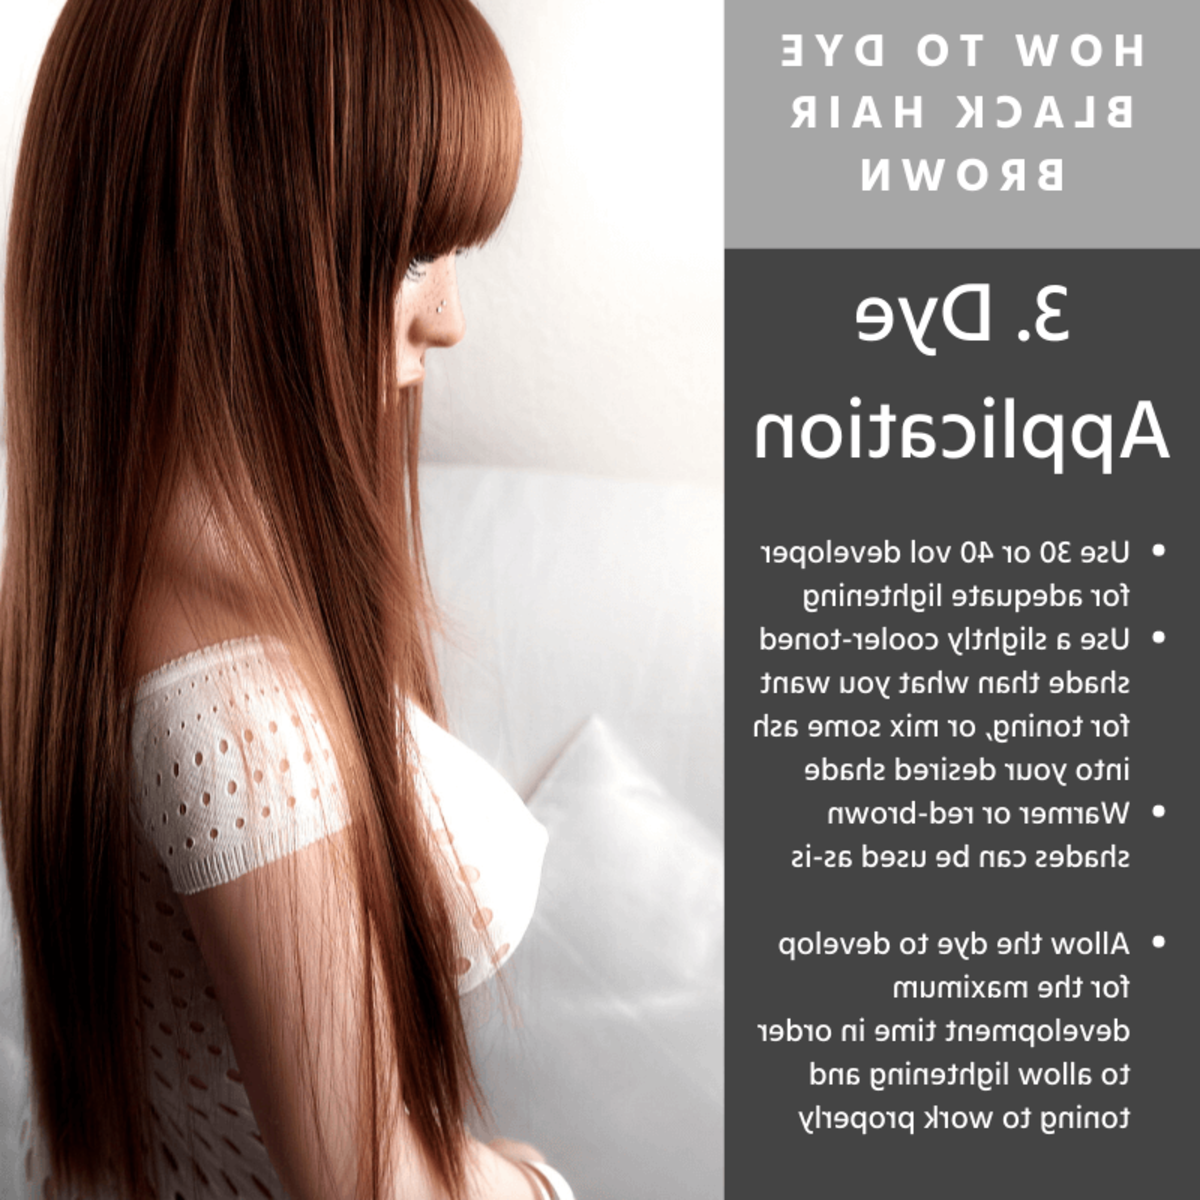 Can you apply developer directly to hair?